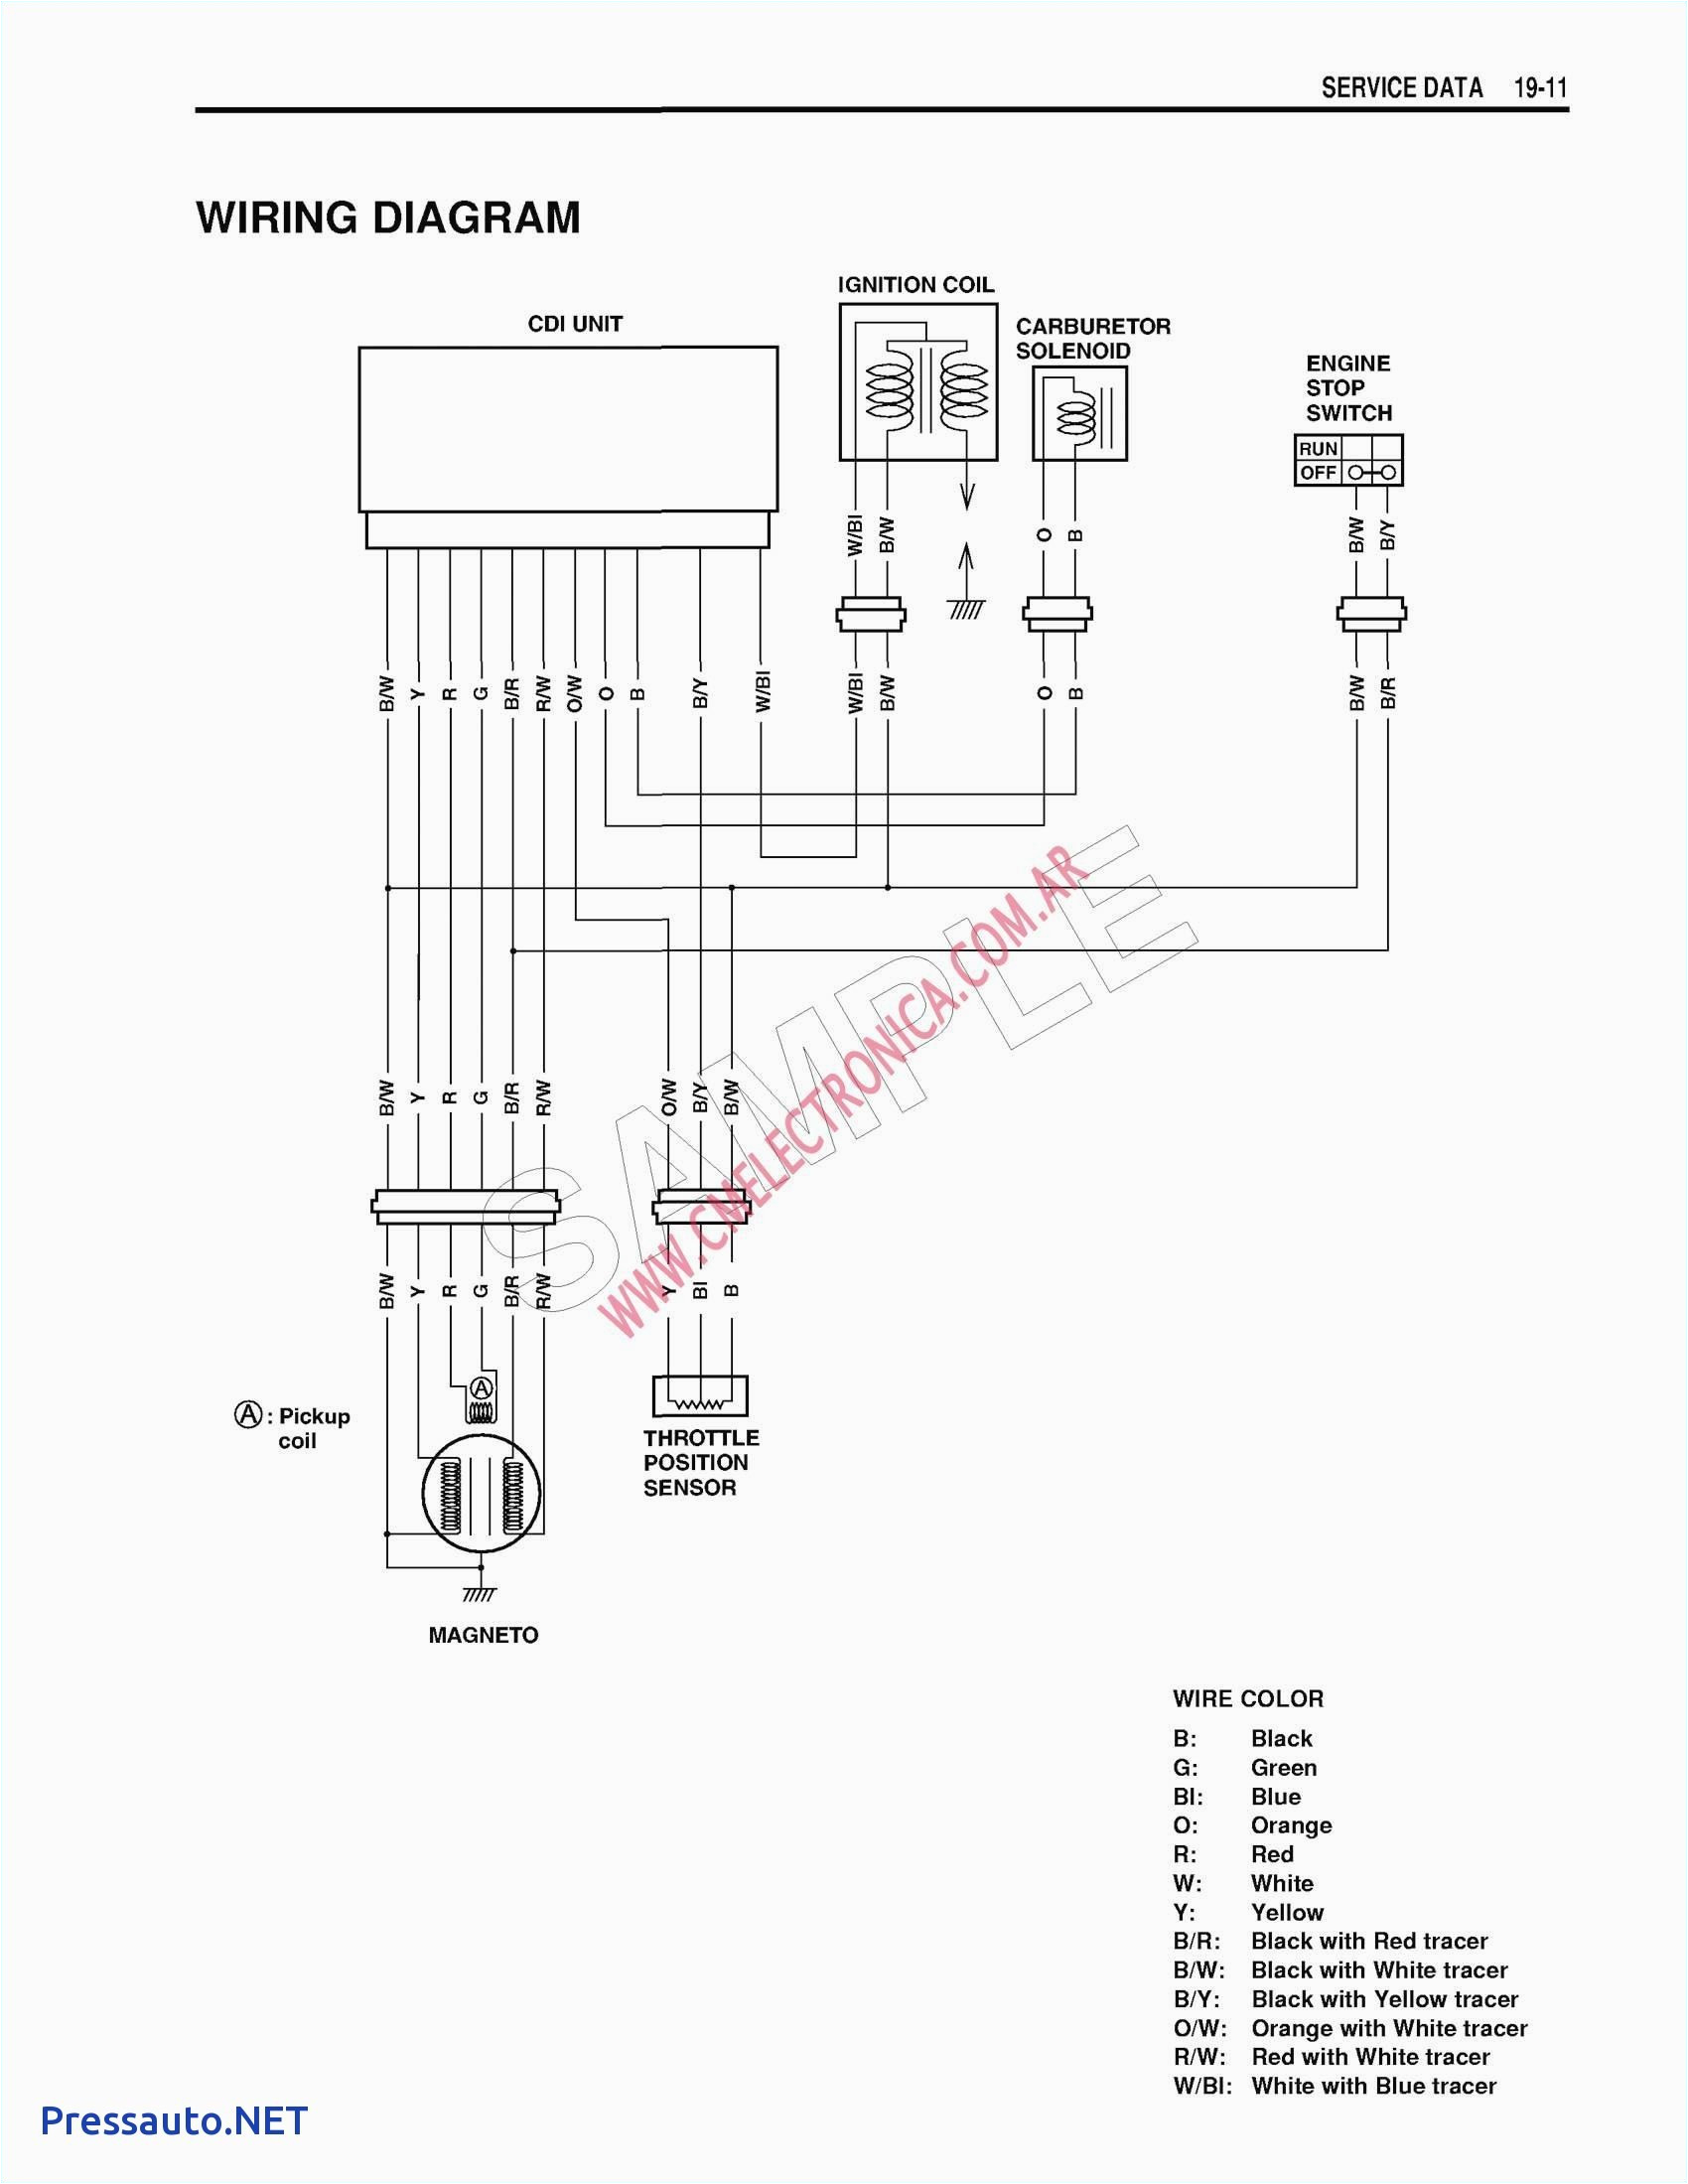 dc cdi ignition wiring diagram wiring diagram hetwiring diagram likewise cdi ignition circuit on dc cdi